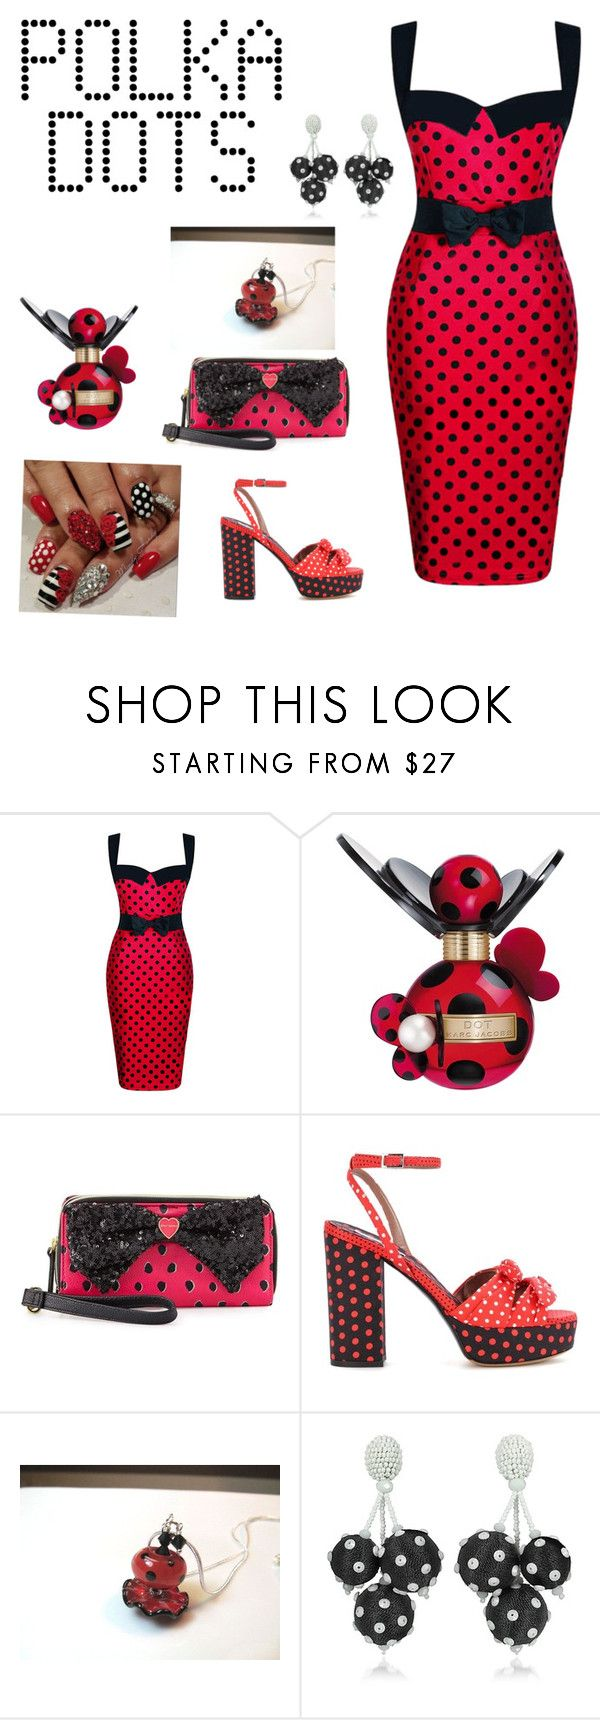 """Dots"" by mel-box ❤ liked on Polyvore featuring WithChic, Marc Jacobs, Betsey Johnson, Tabitha Simmons and Oscar de la Renta"